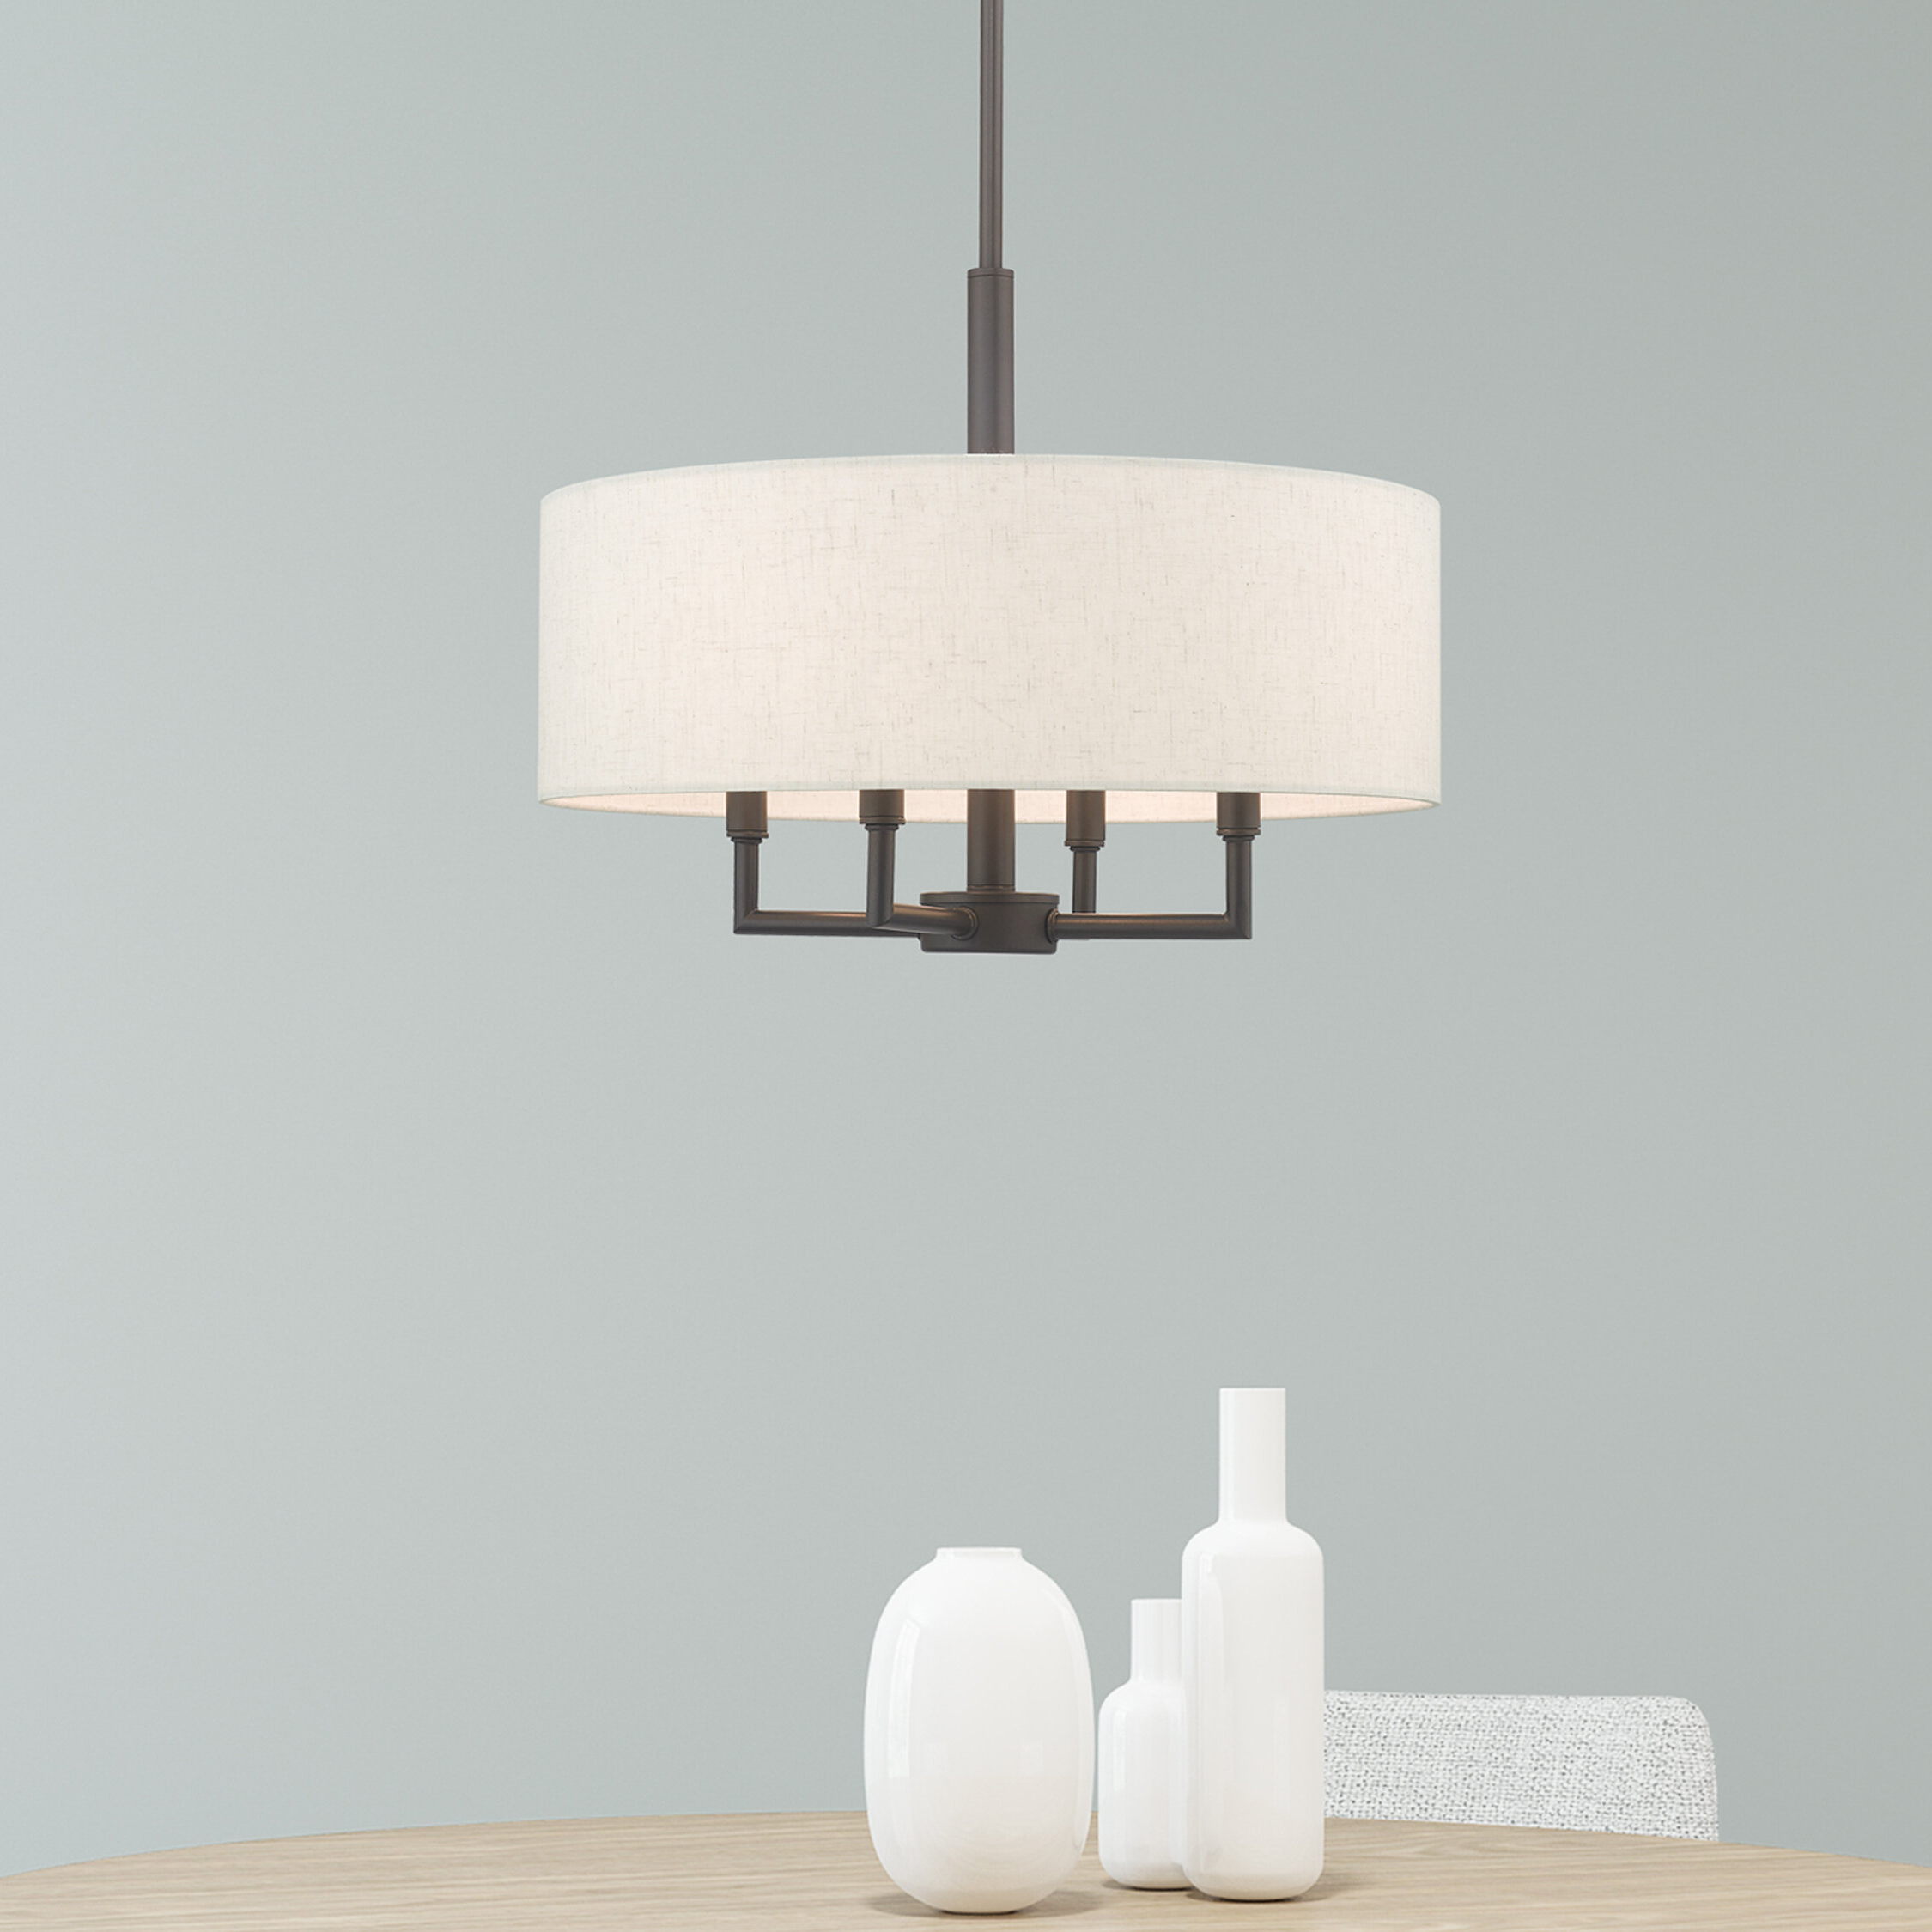 Preferred Alina 4 Light Drum Chandelier With Breithaup 4 Light Drum Chandeliers (View 13 of 25)